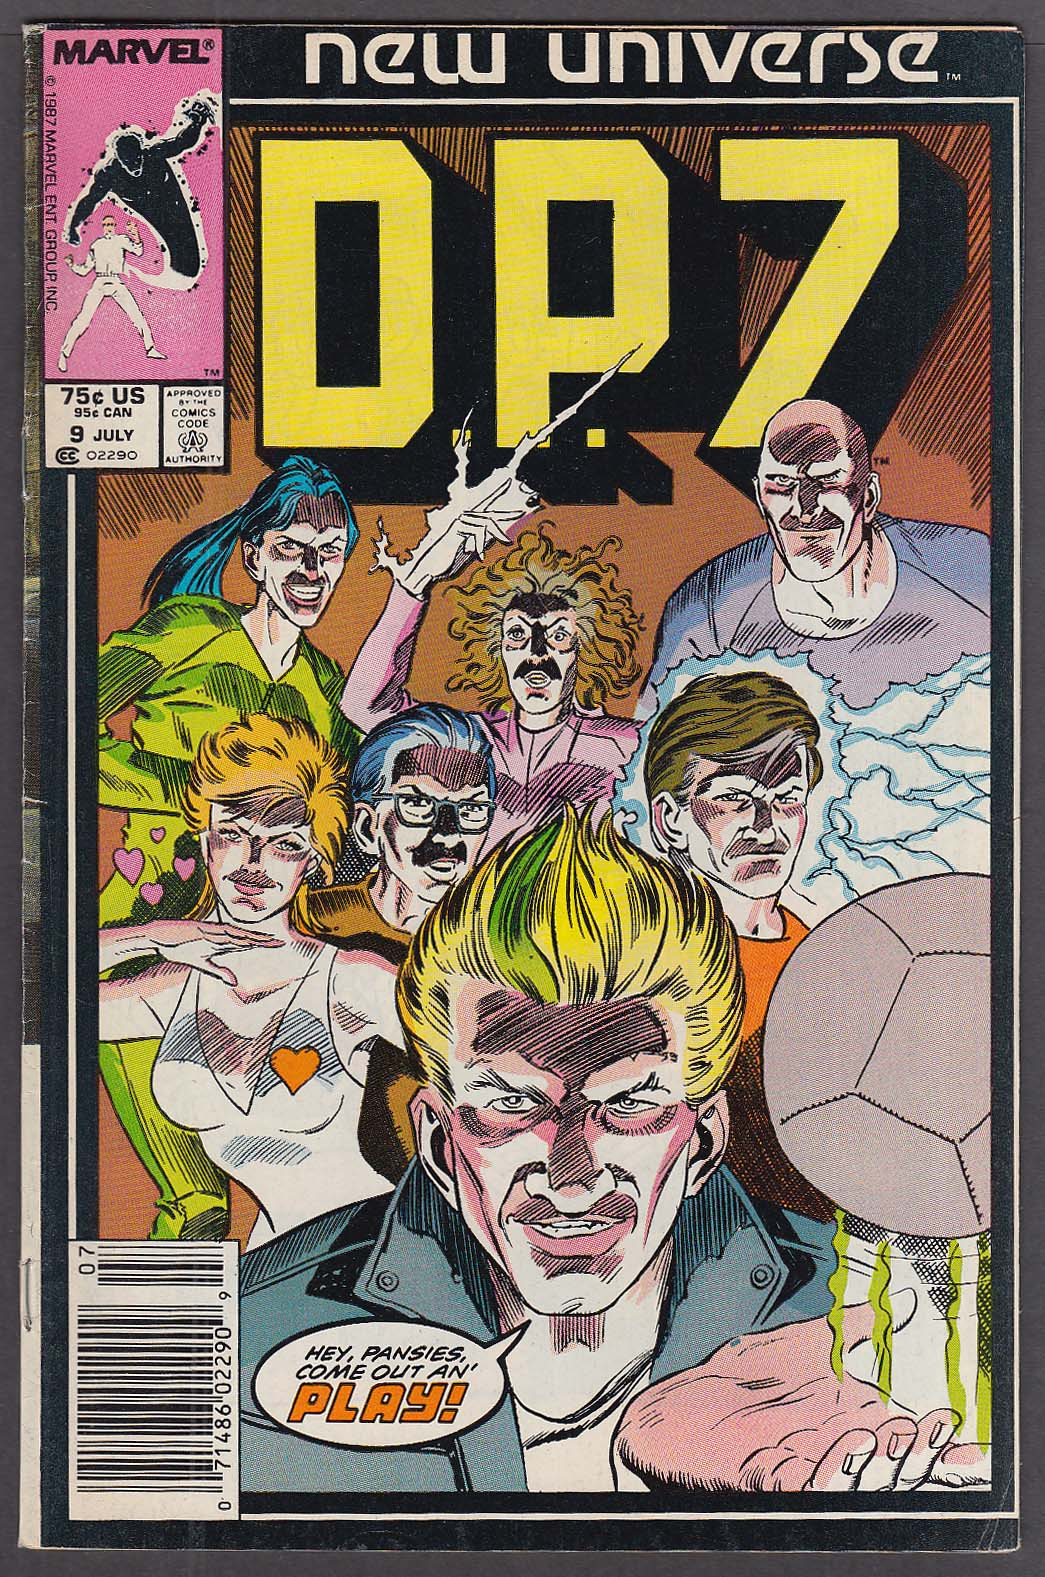 Image for D. P. 7 #9 Marvel New Universe comic 7 1987